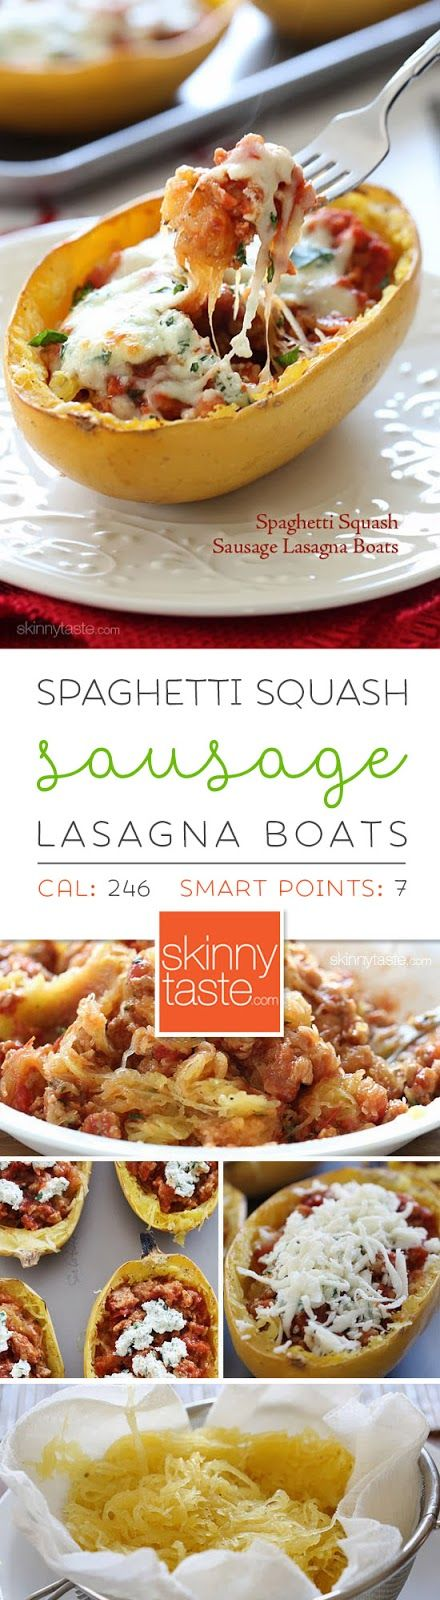 Spaghetti Squash Sausage Lasagna Boats – stuffed with chicken sausage, marinara, ricotta and mozzarella, YUM!